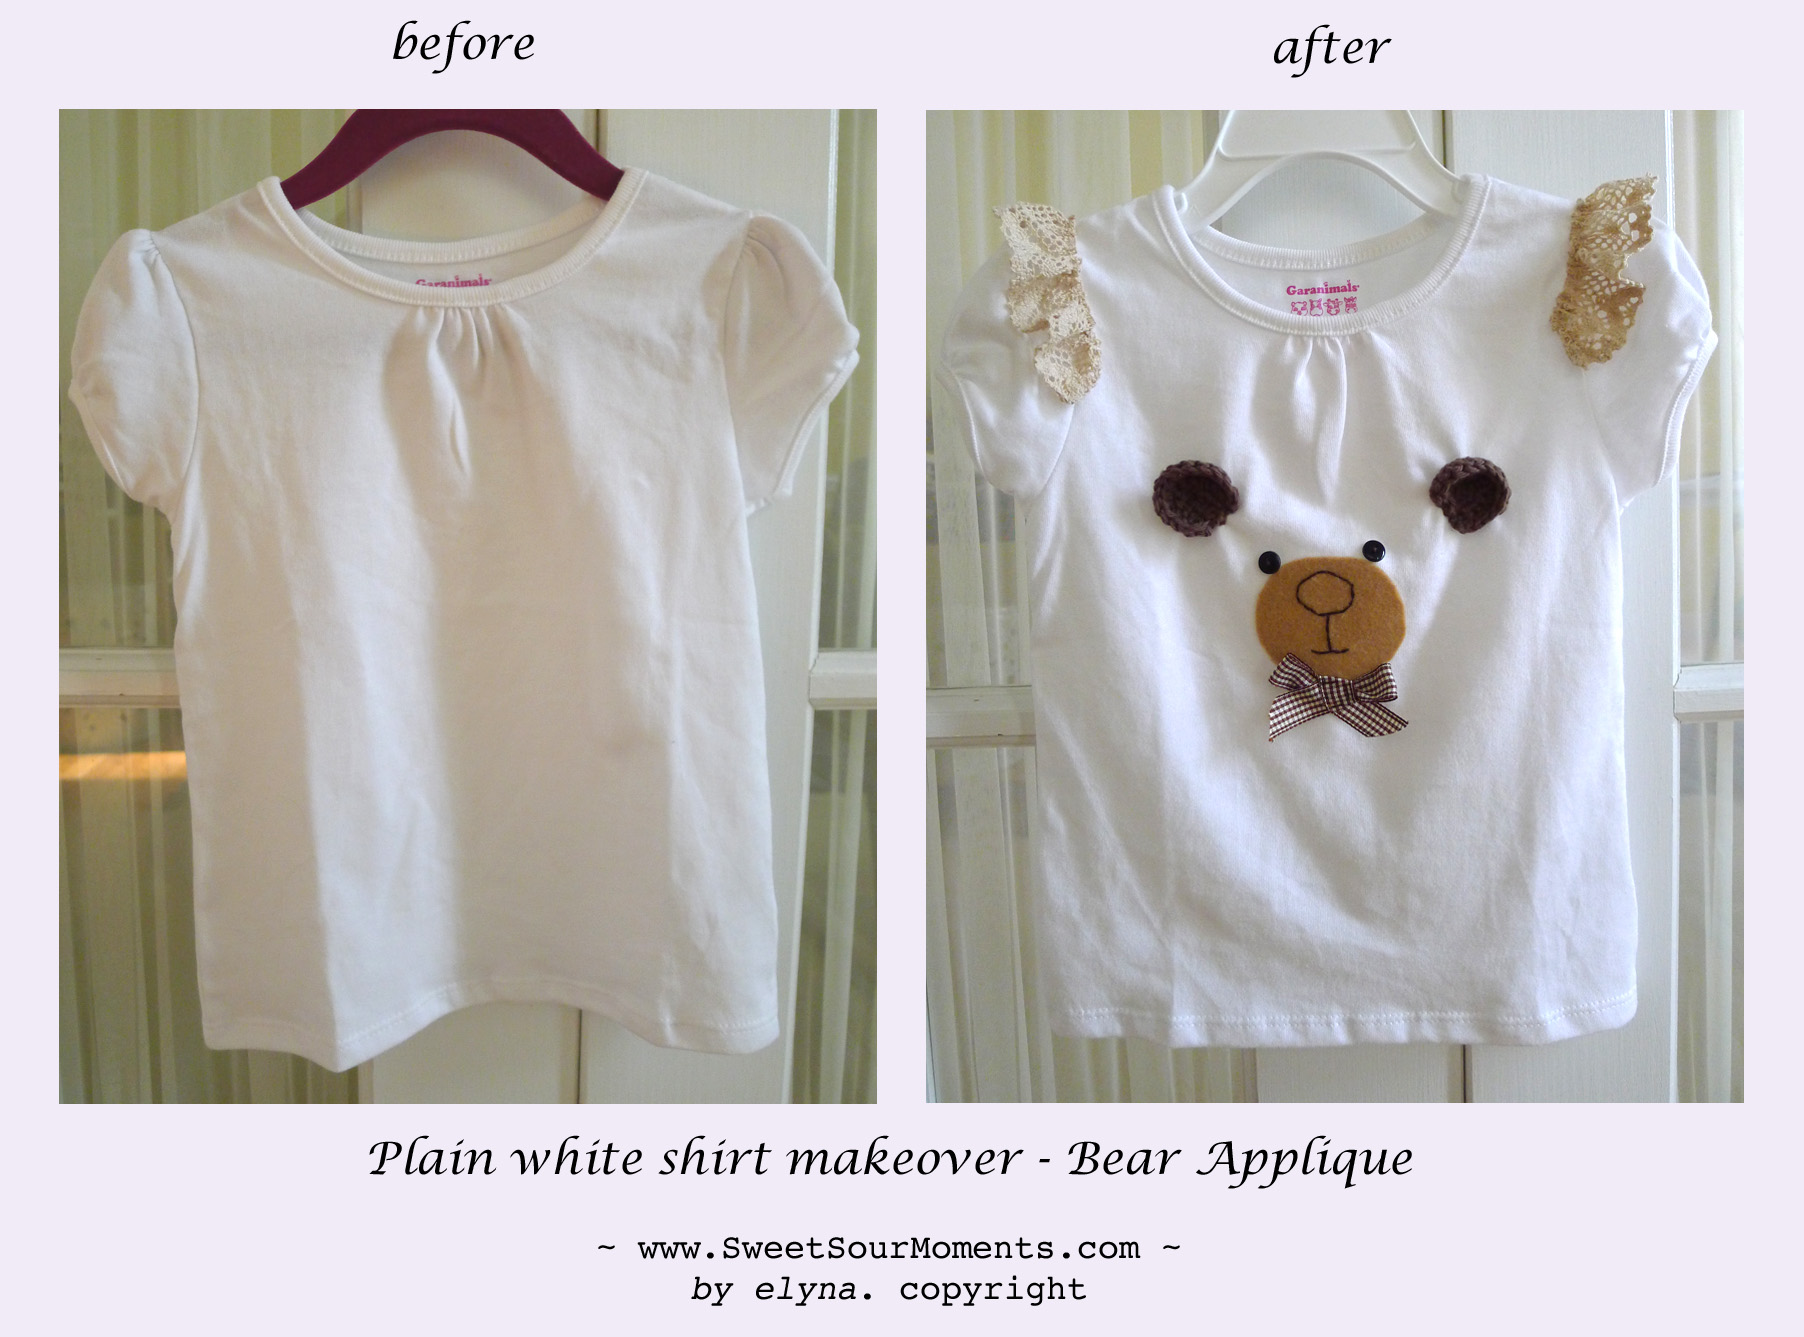 Plain shirt makeover with bear applique sweetsourmoments